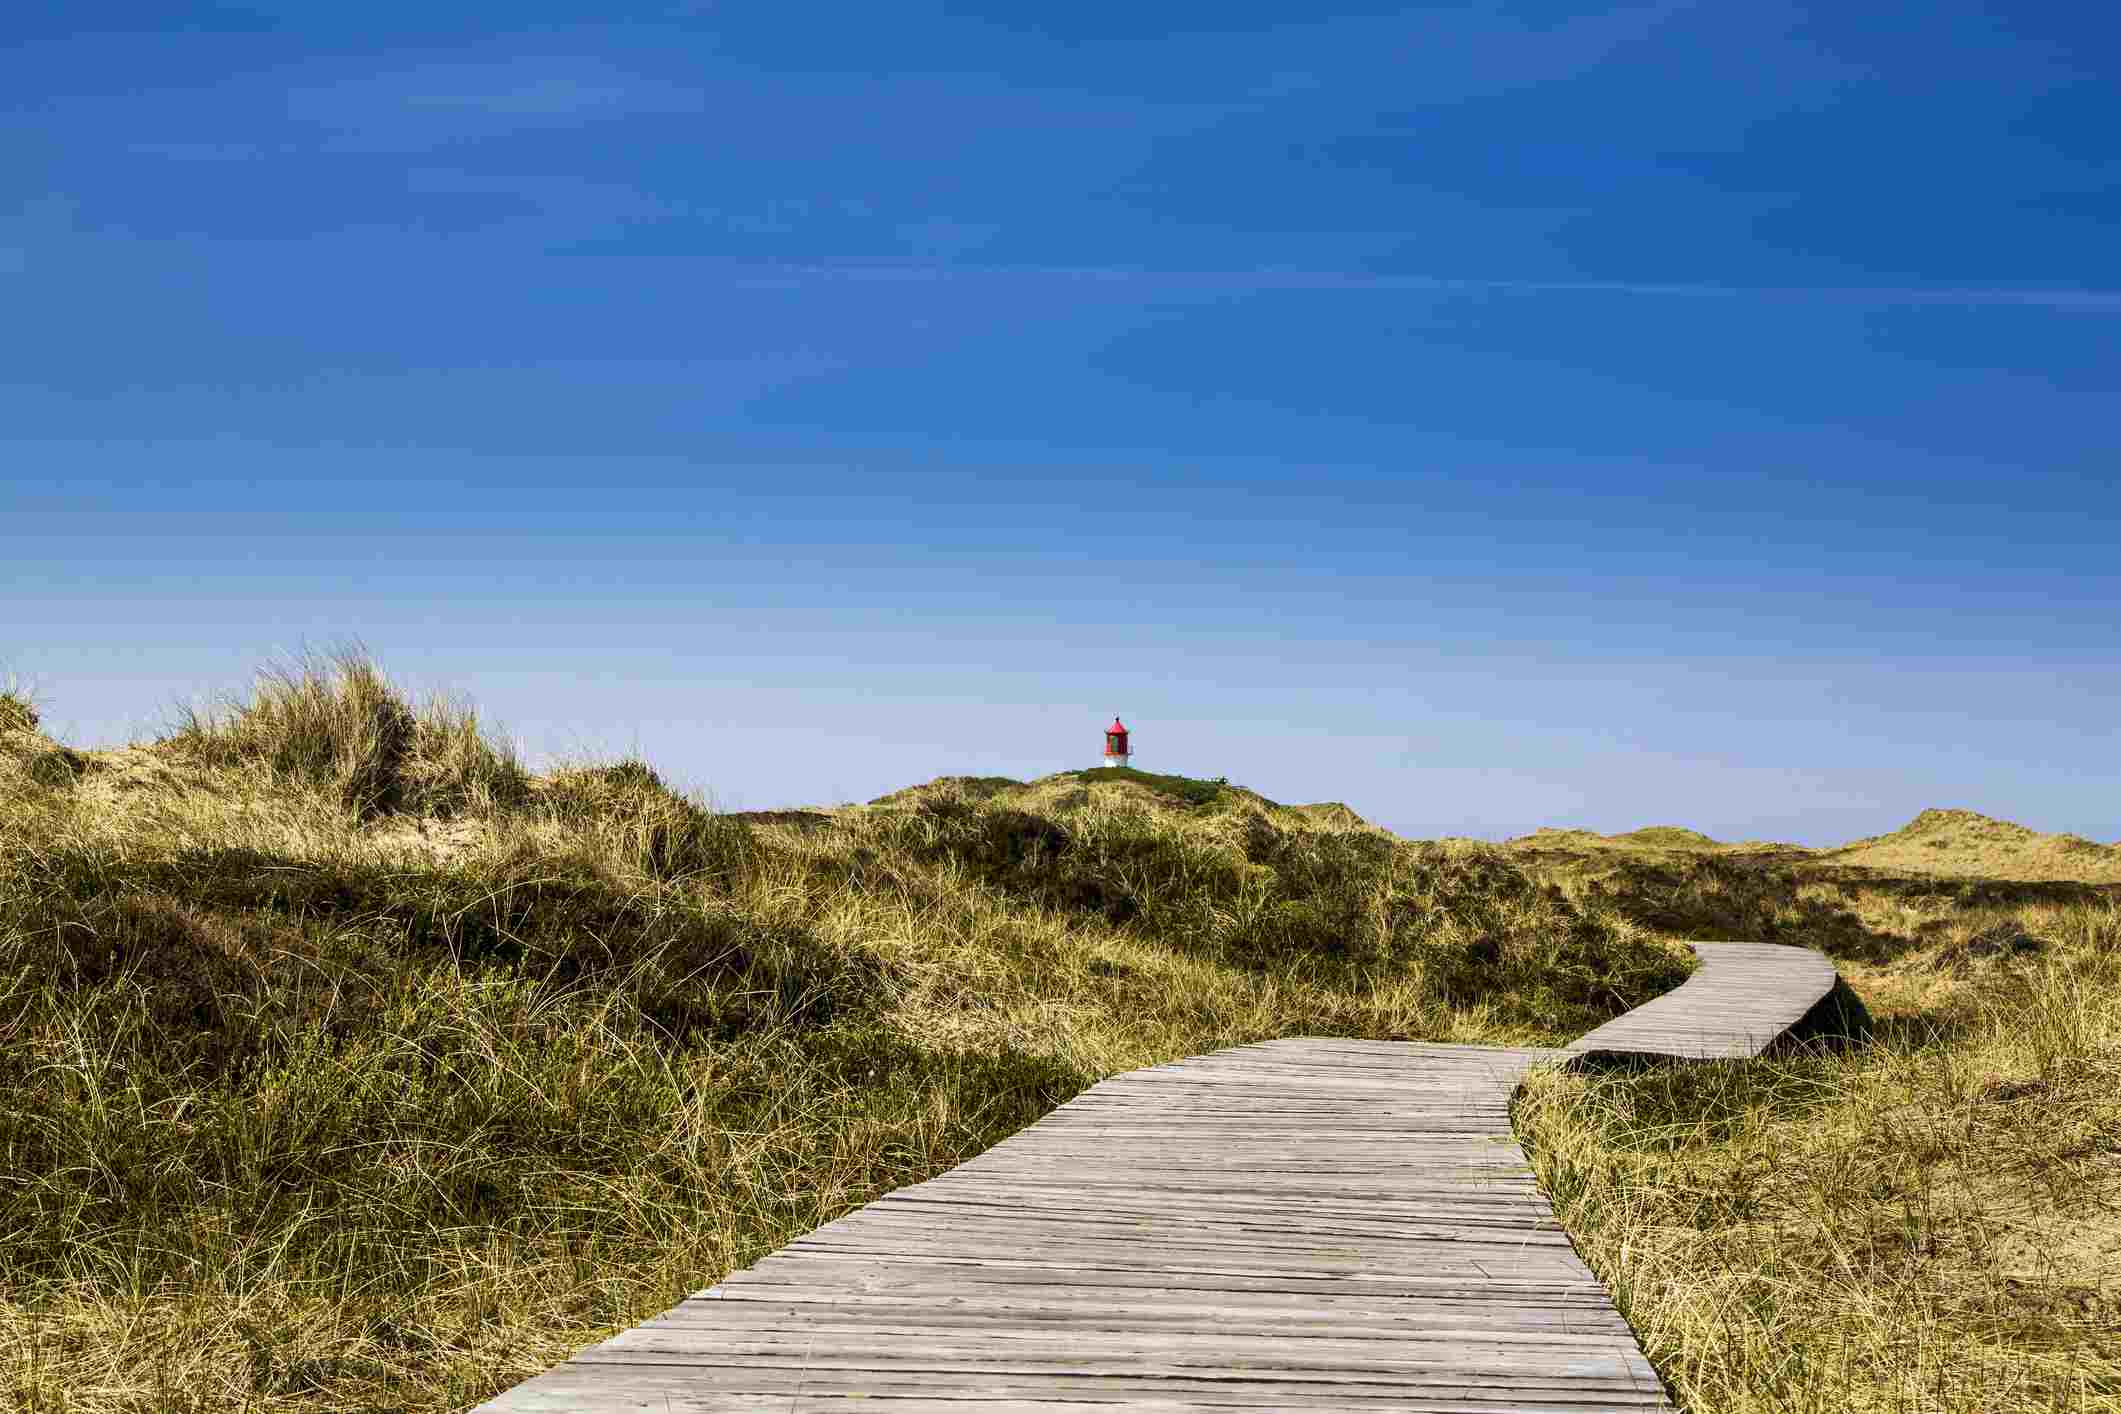 Boardwalk across the dunes to the Quermarkenfeuer light beacon, Amrum, North Frisian Islands, North Frisia, Schleswig-Holstein, Germany, Europe